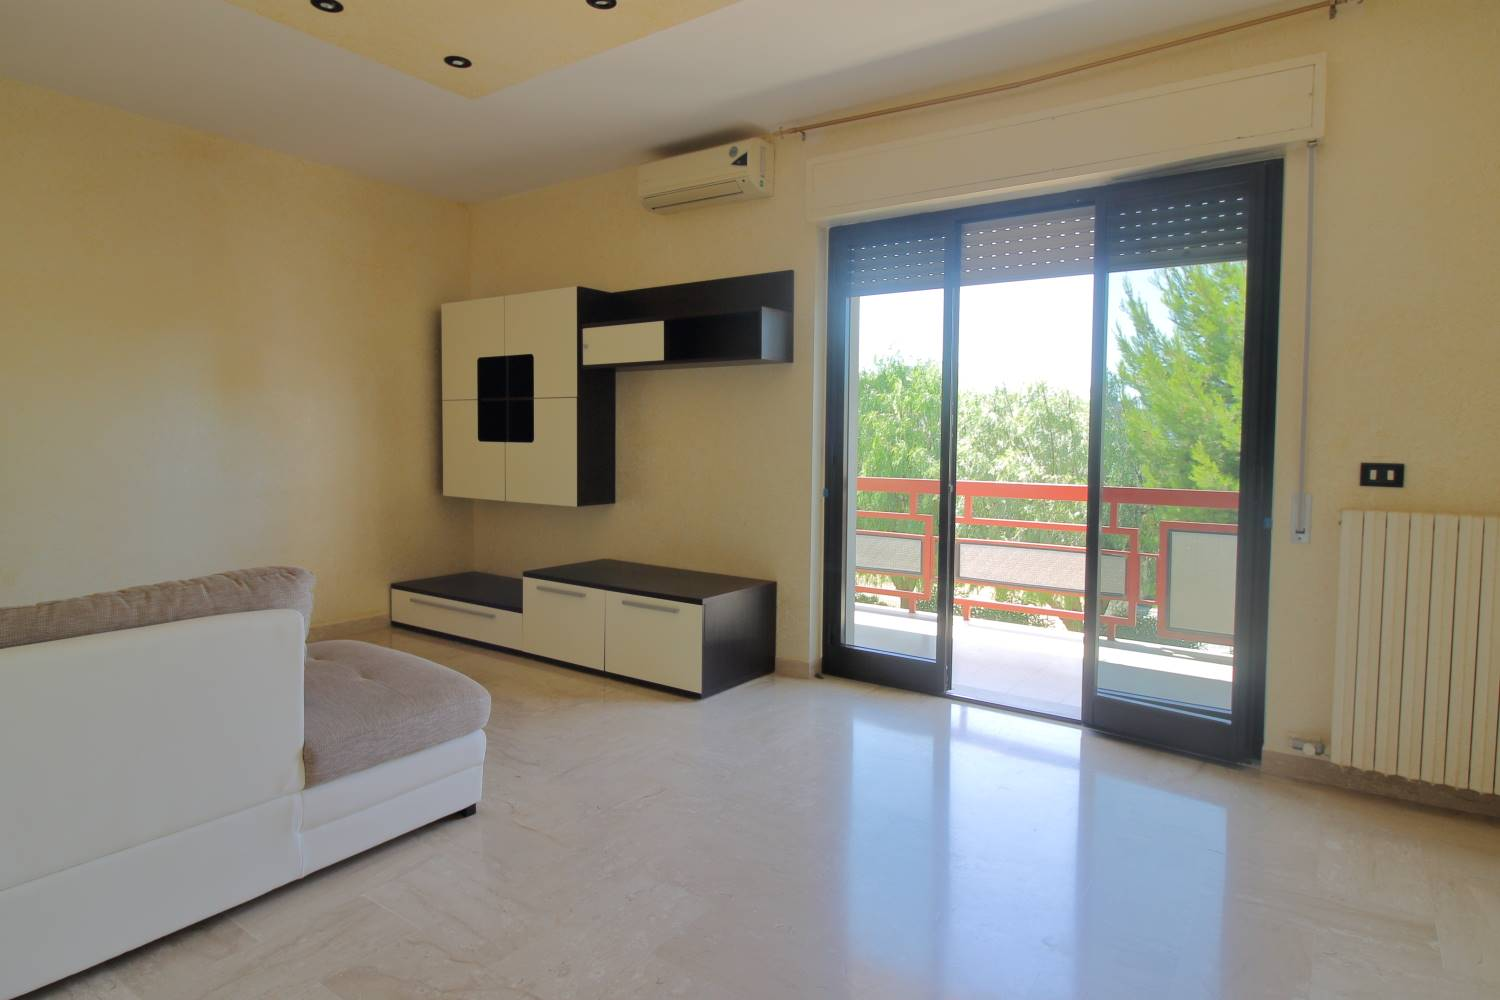 MONOPOLI, Apartment for sale of 110 Sq. mt., Good condition, Heating Individual heating system, Energetic class: G, Epi: 165 kwh/m2 year, placed at 1°, composed by: 4 Rooms, Separate kitchen, , 3